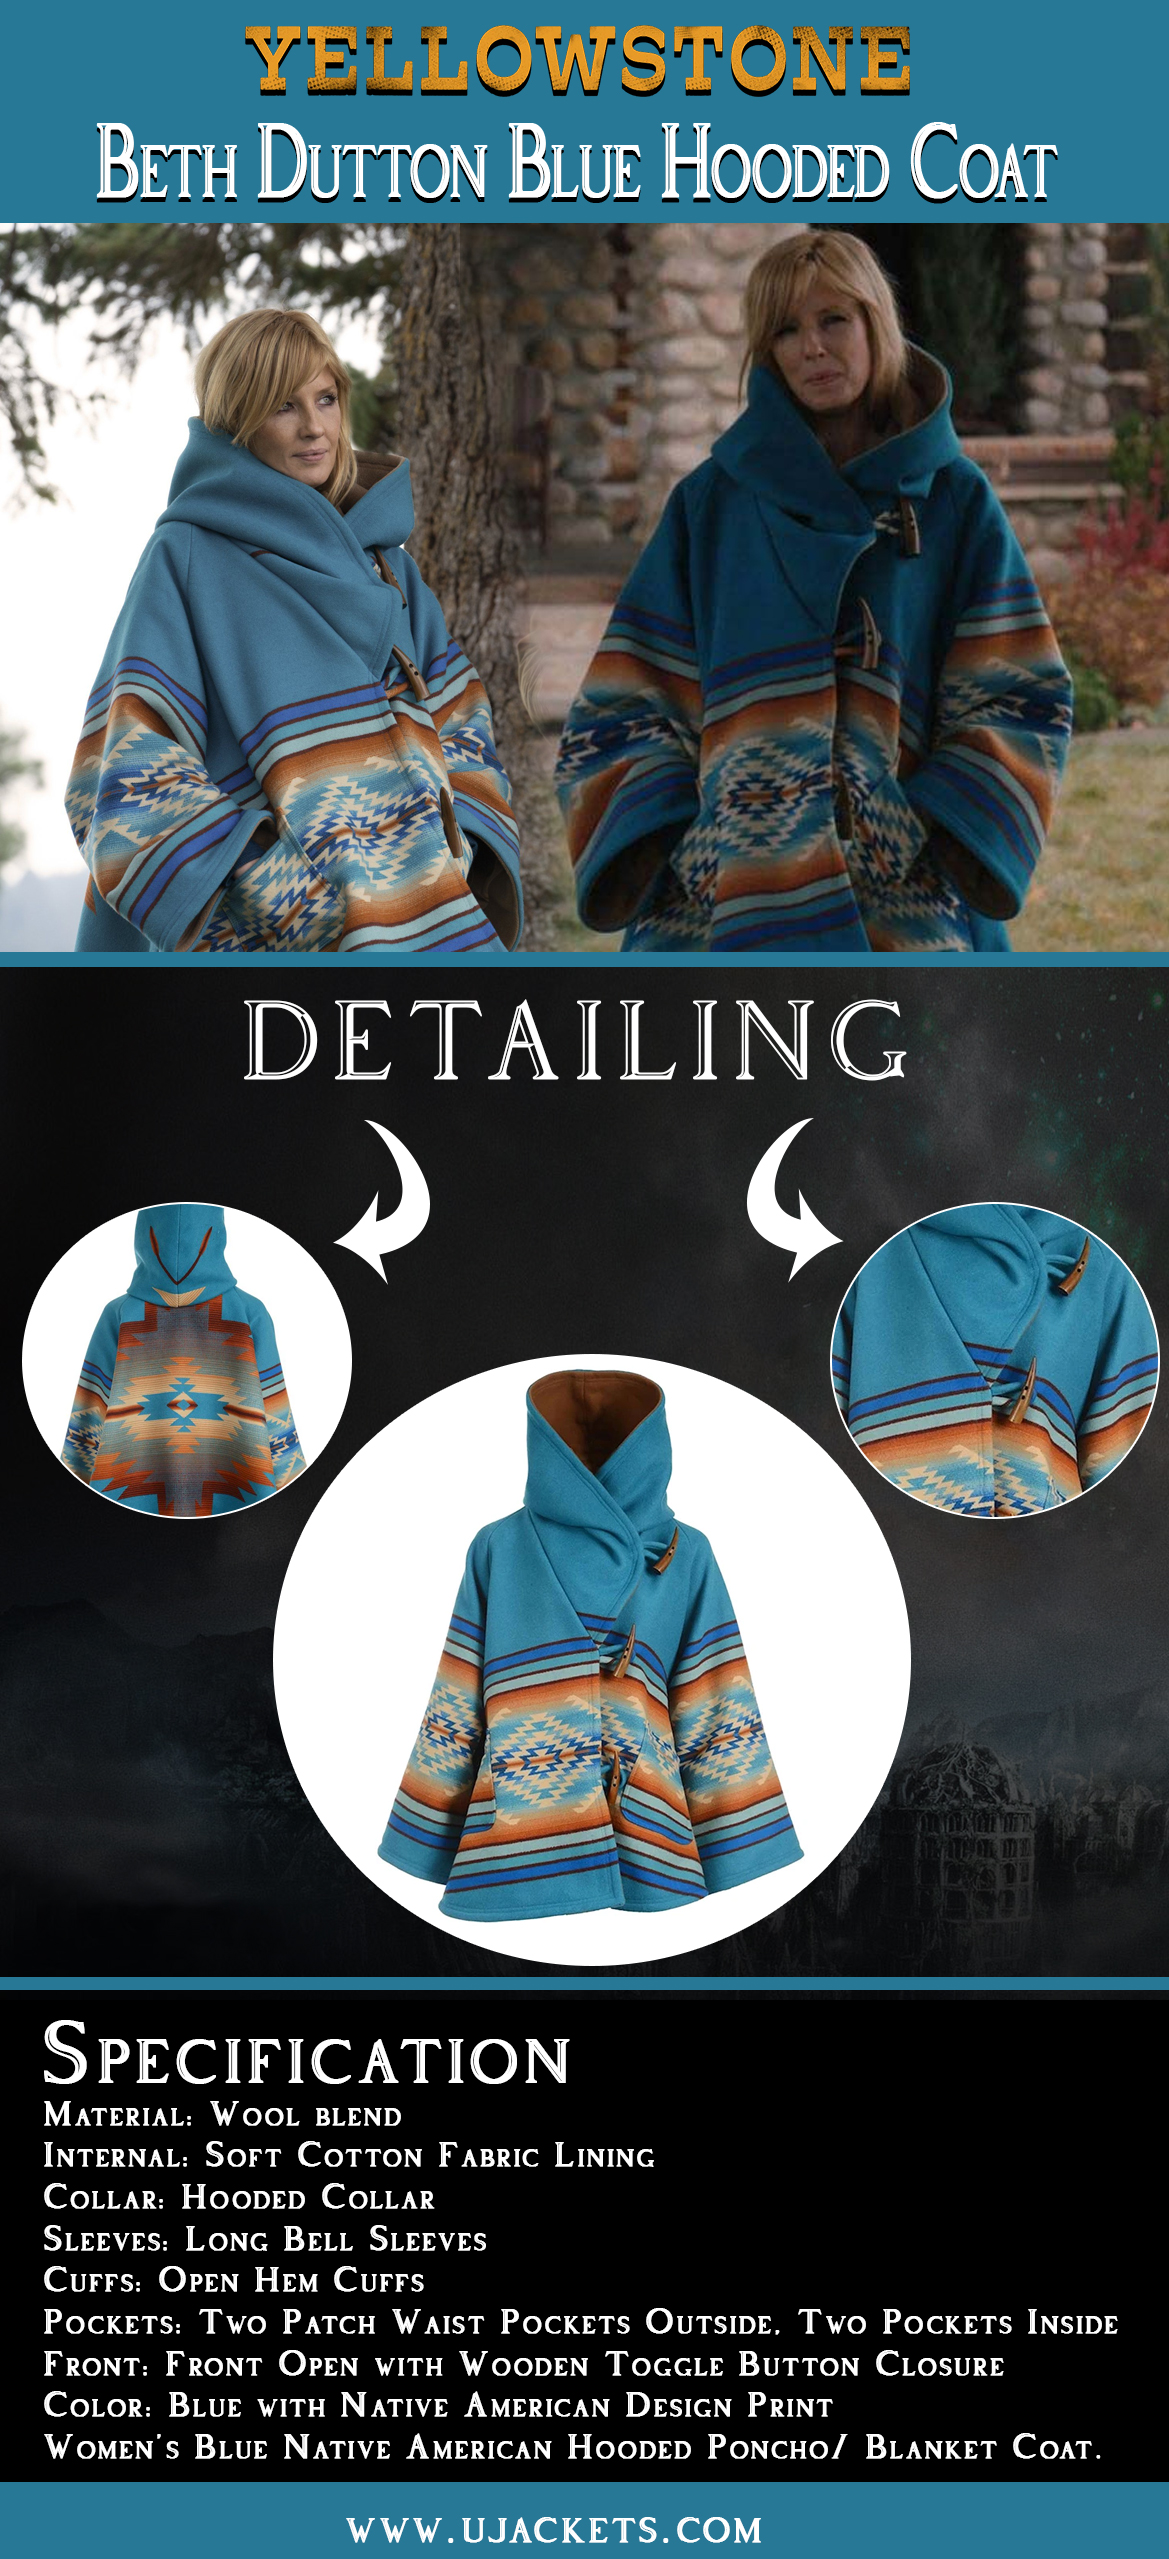 Yellowstone-Beth-Dutton-Blue-Hooded-Coat-info